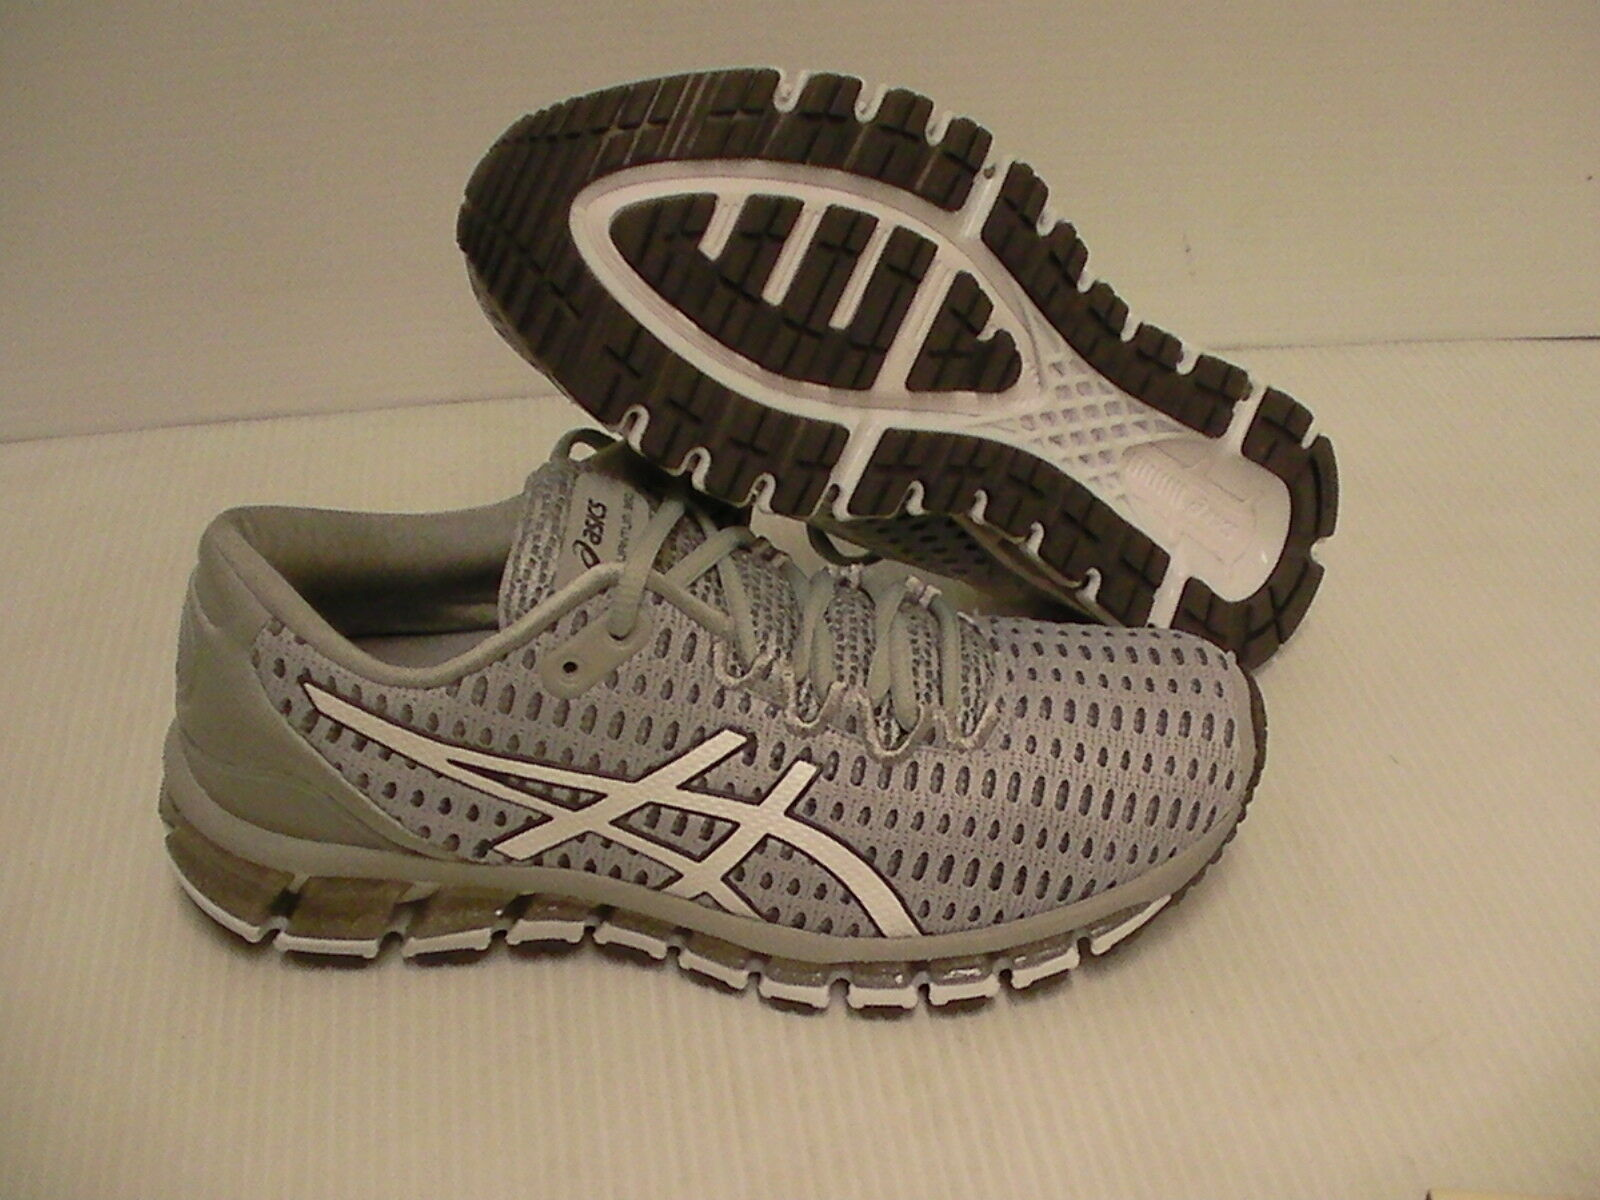 Asics shift women's gel quantum 360 shift Asics mid grey running shoes size 7.5 us b207bd